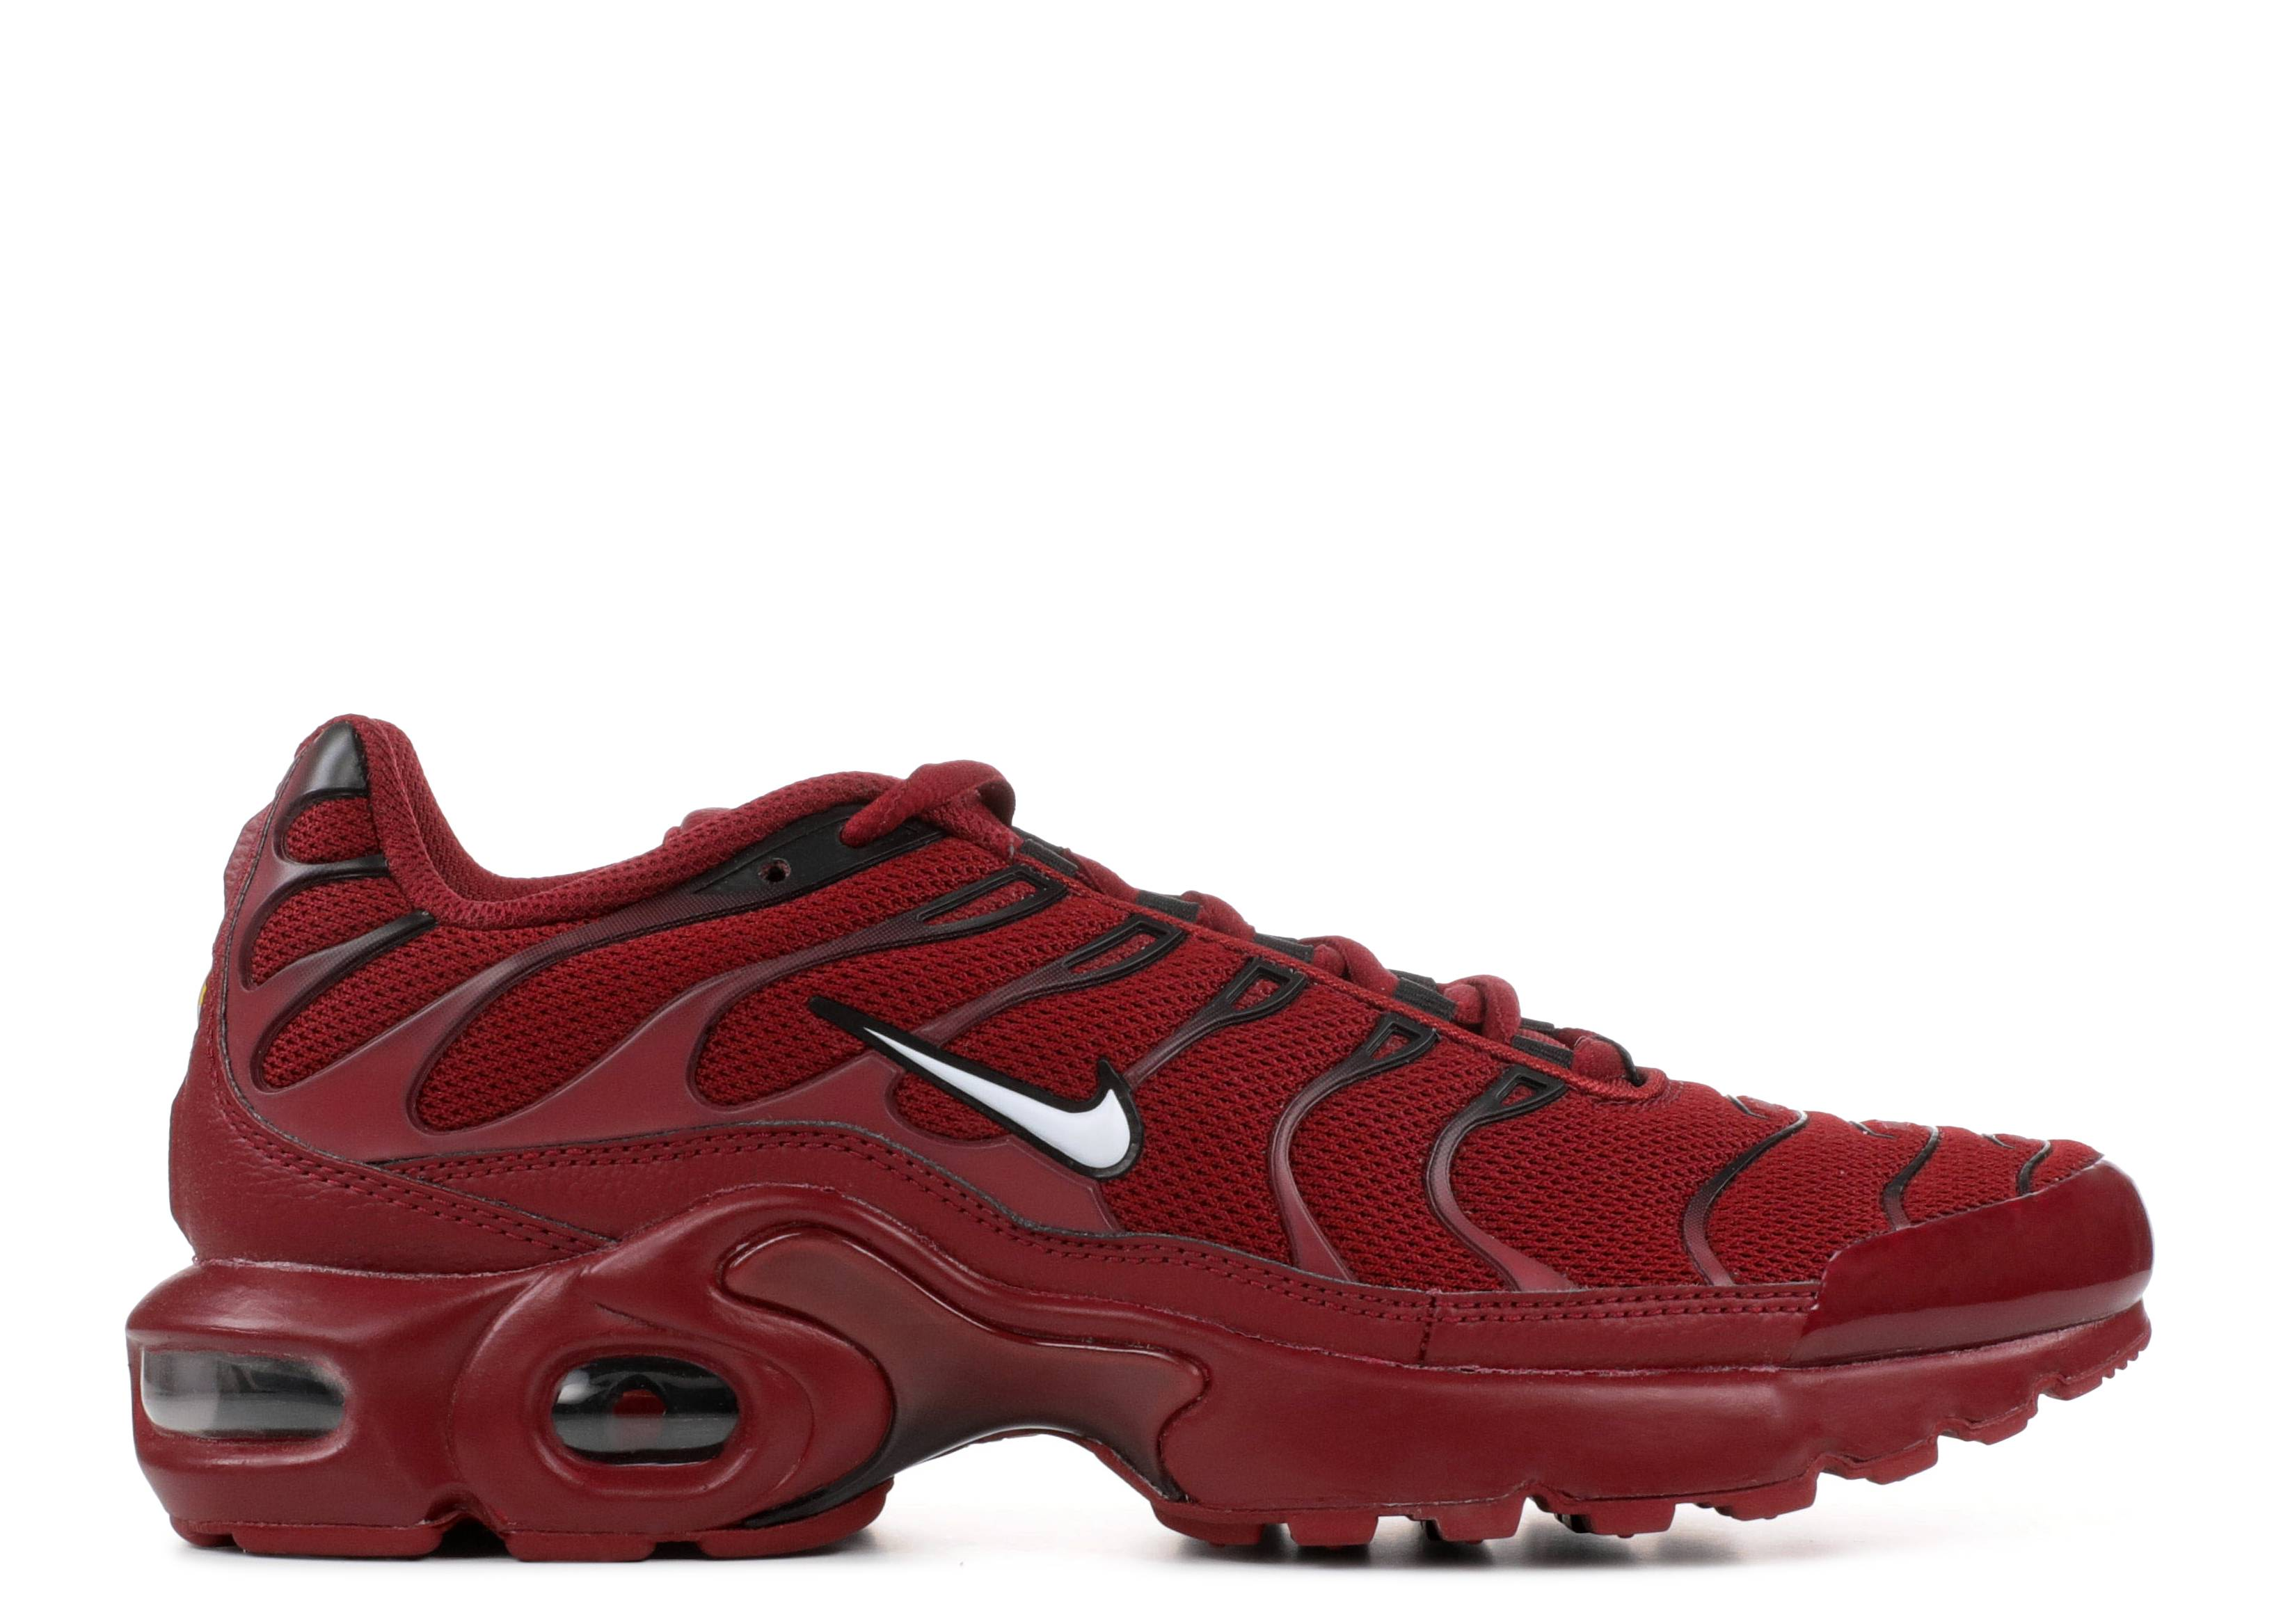 7395cb5c02da10 Air Max Plus (GS) - Nike - 655020 603 - team red white-black ...